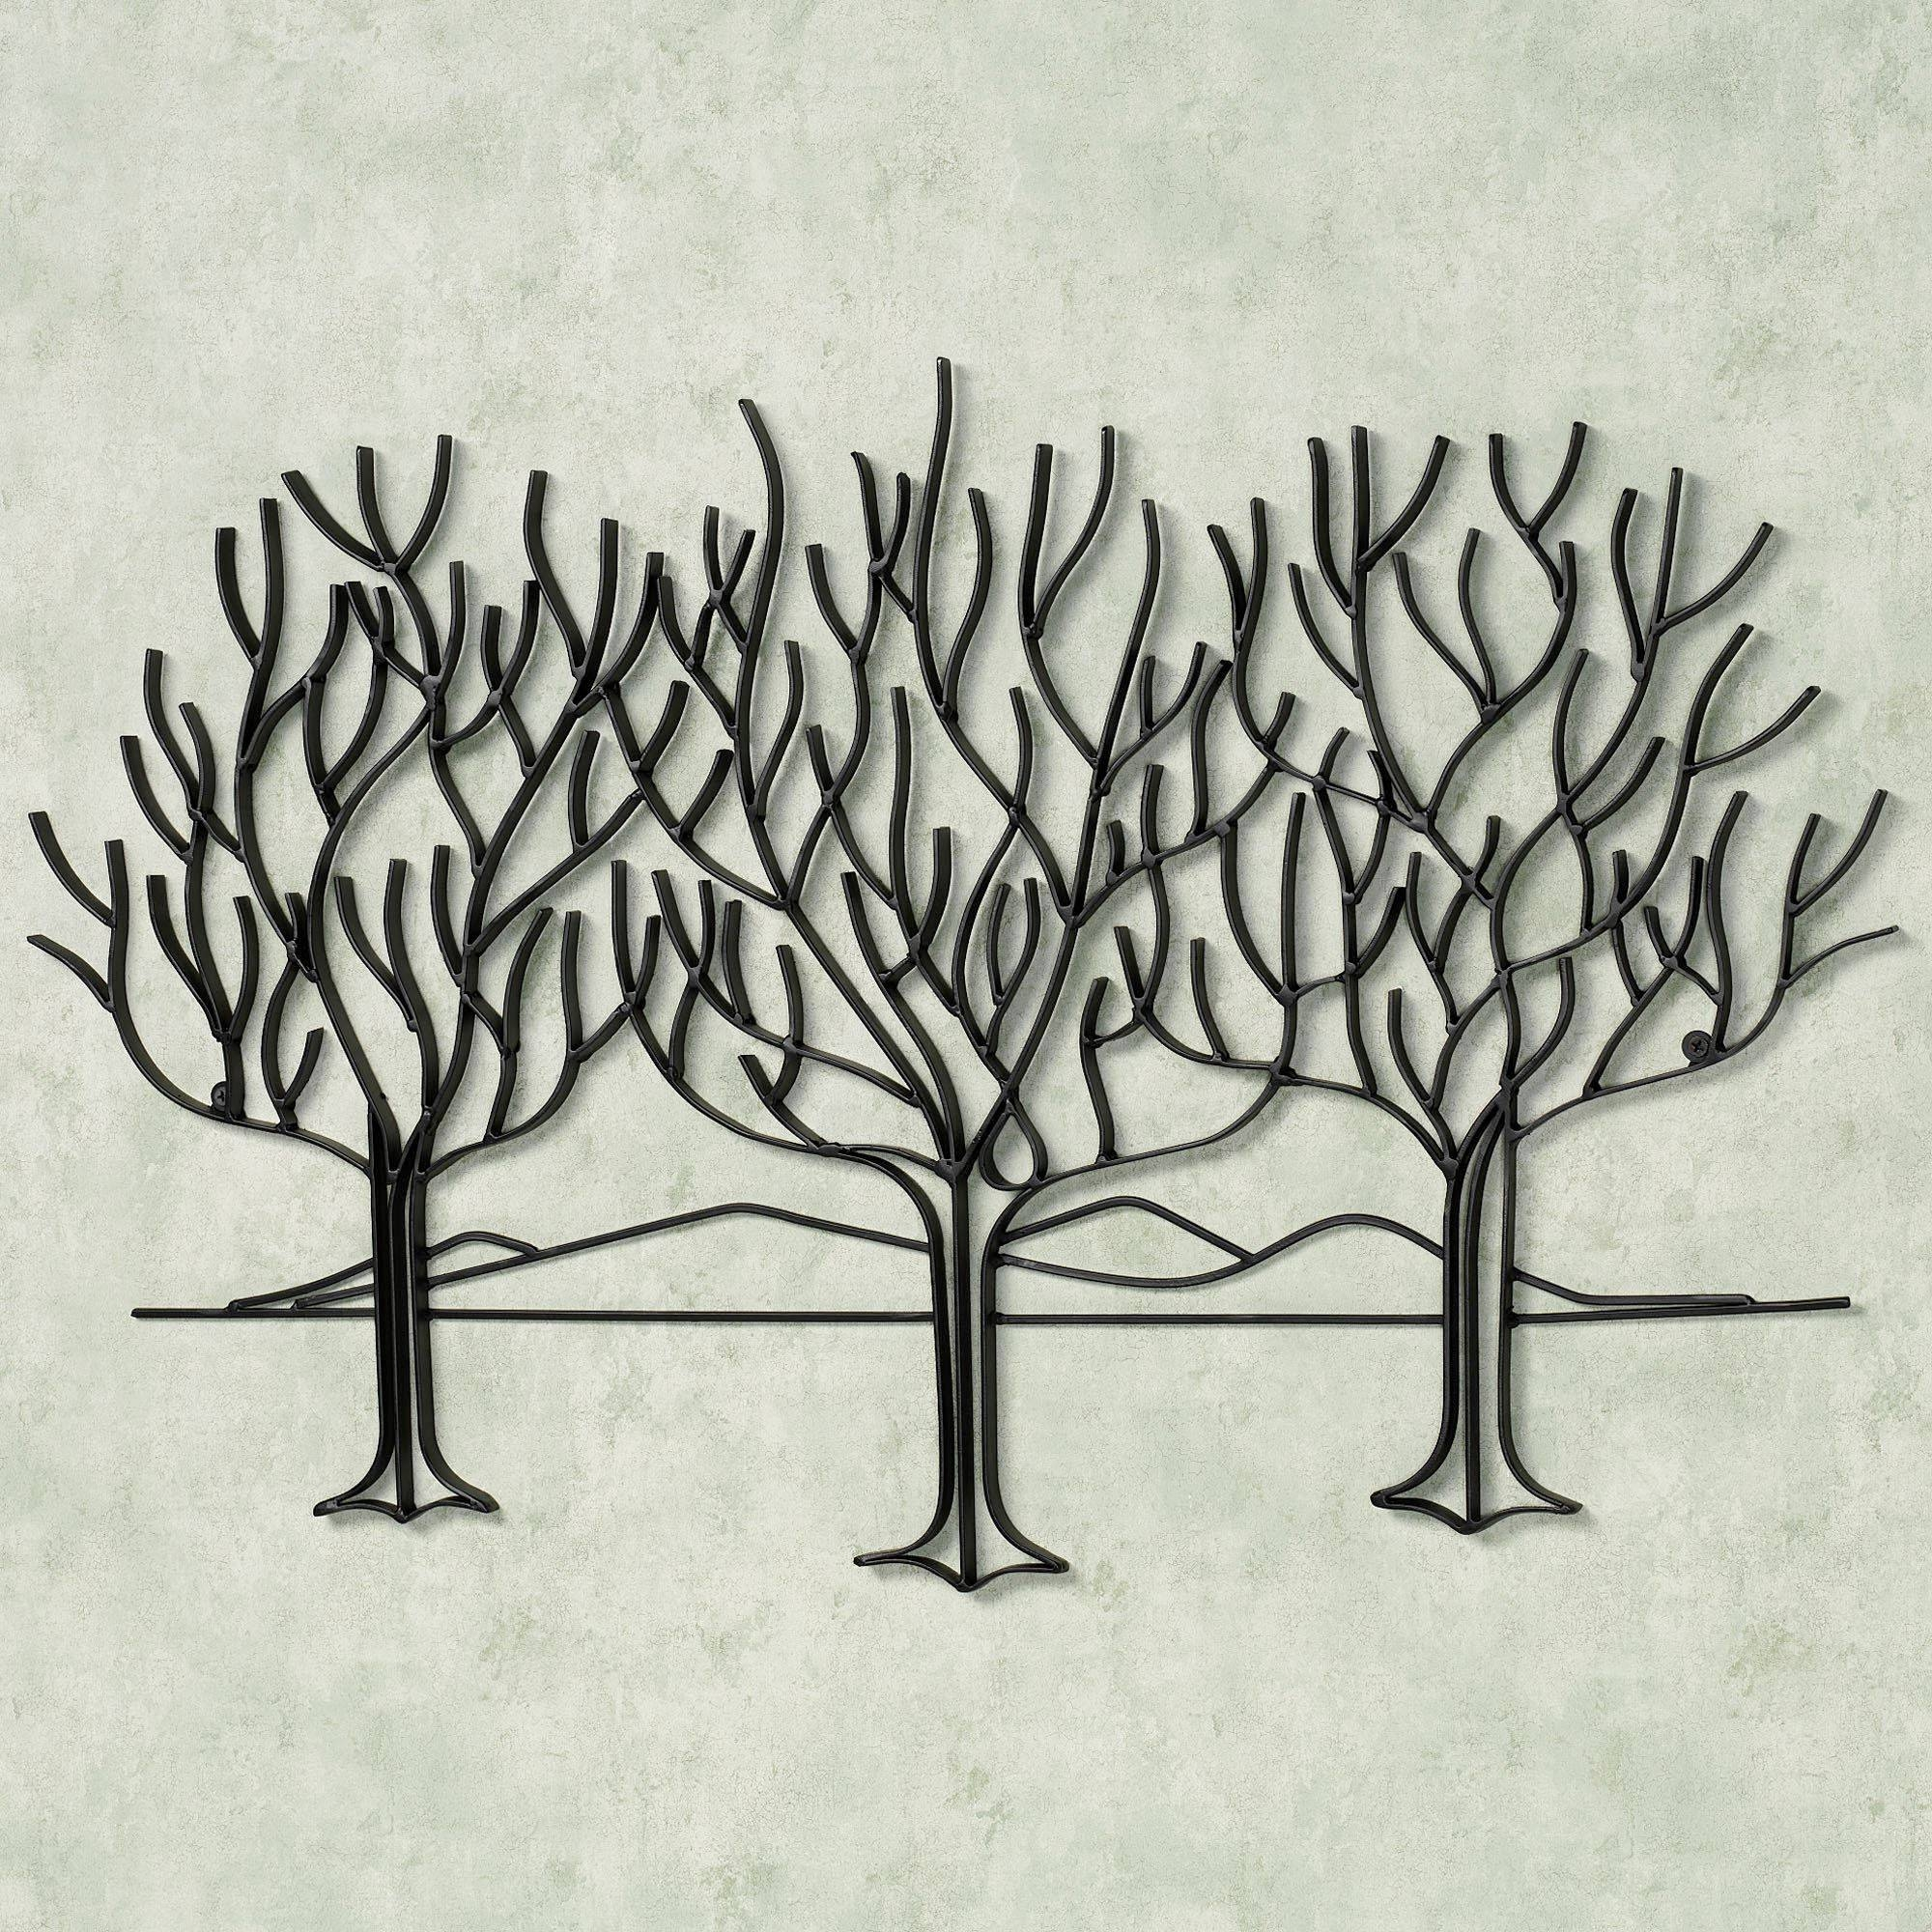 Wall Art Designs: Metal Wall Art Trees Black Metal Wall Art Olive Throughout Newest Metal Wall Art Trees (View 19 of 20)